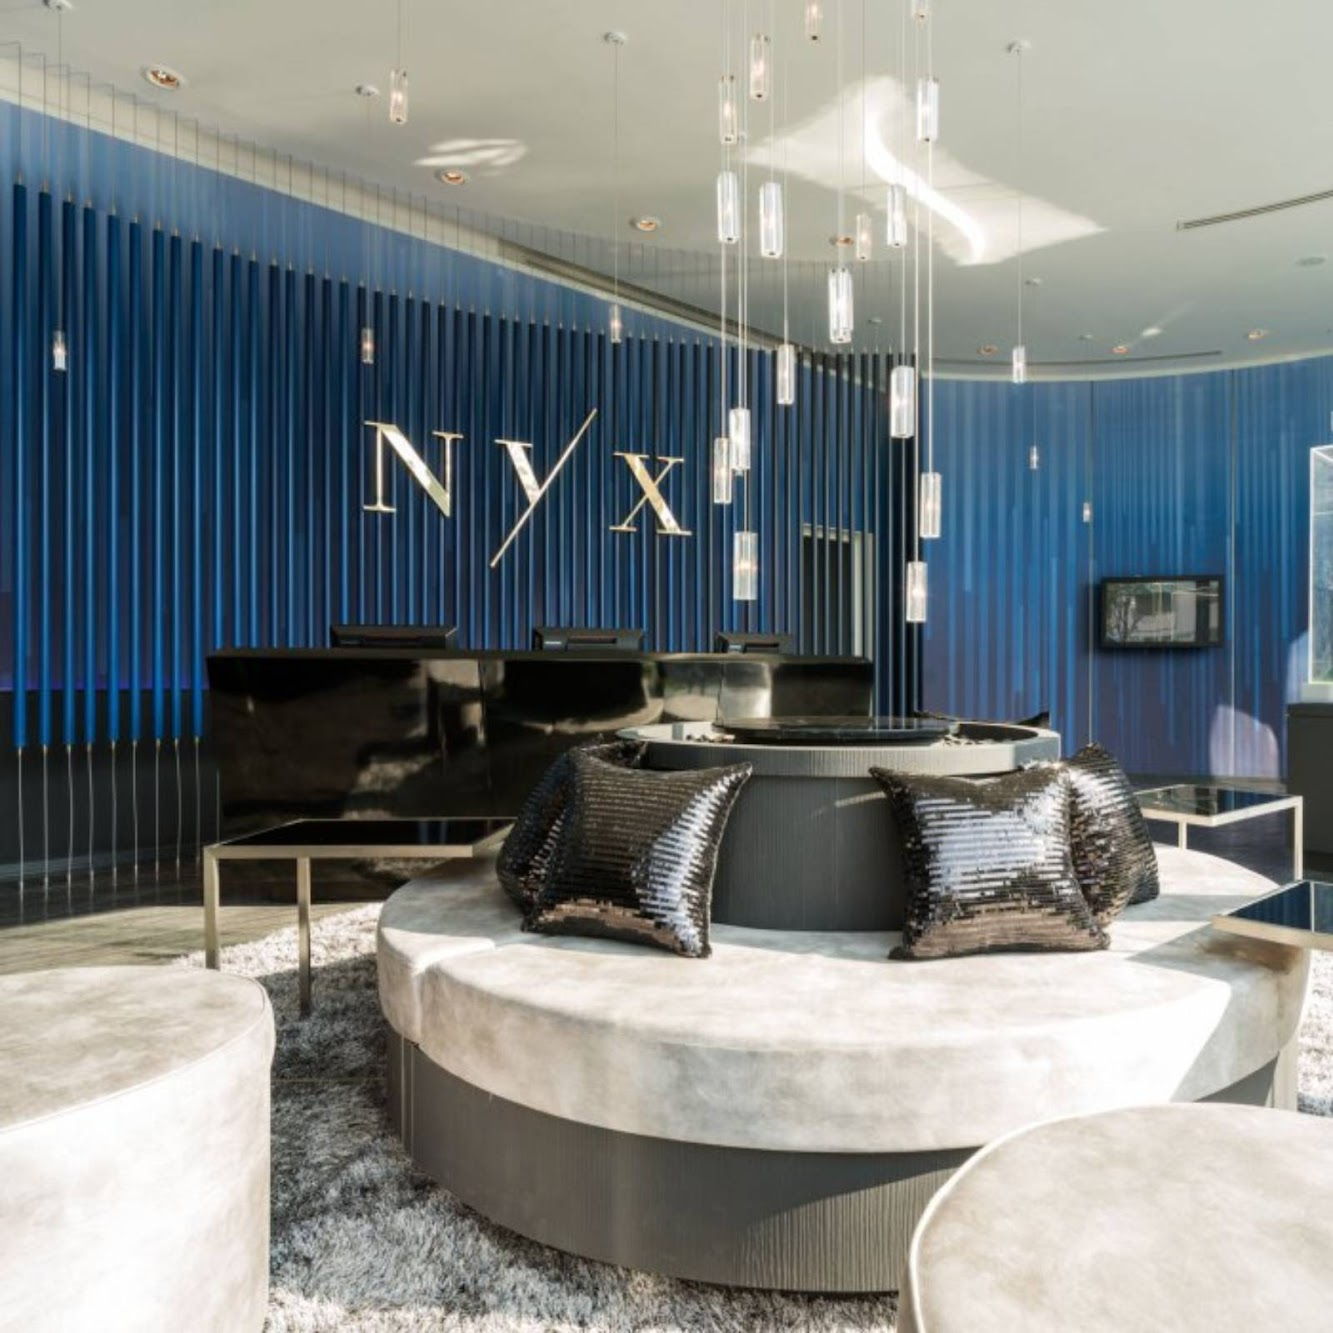 Nyx Sales Gallery by Trop